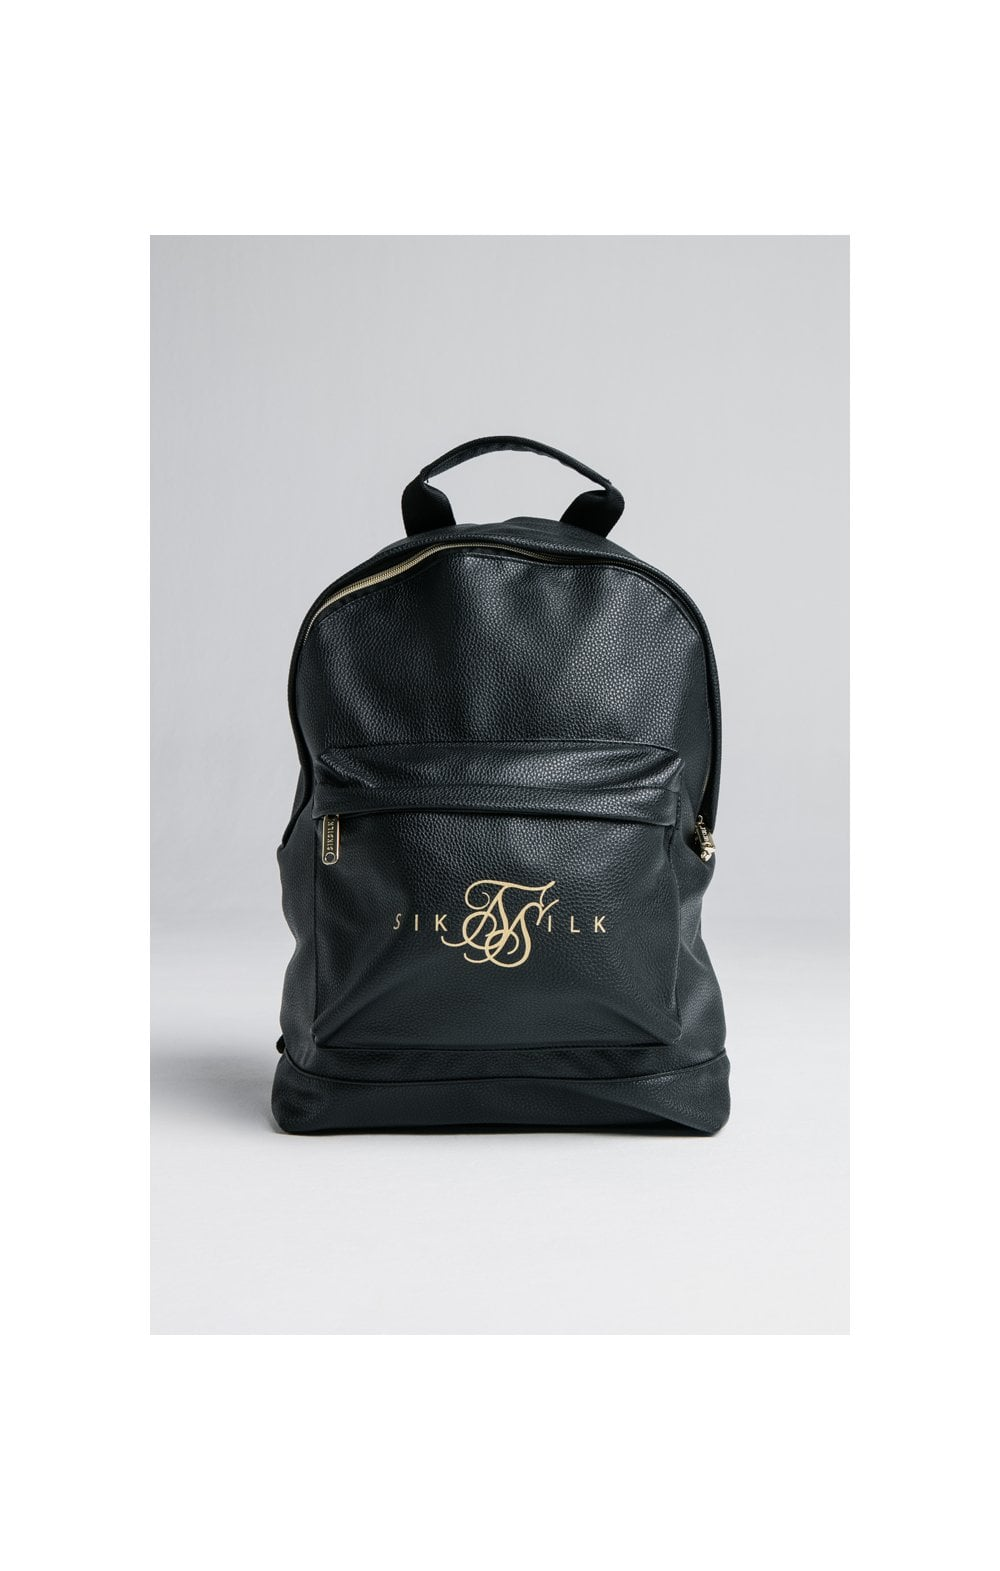 SikSilk Backpack - Black (4)